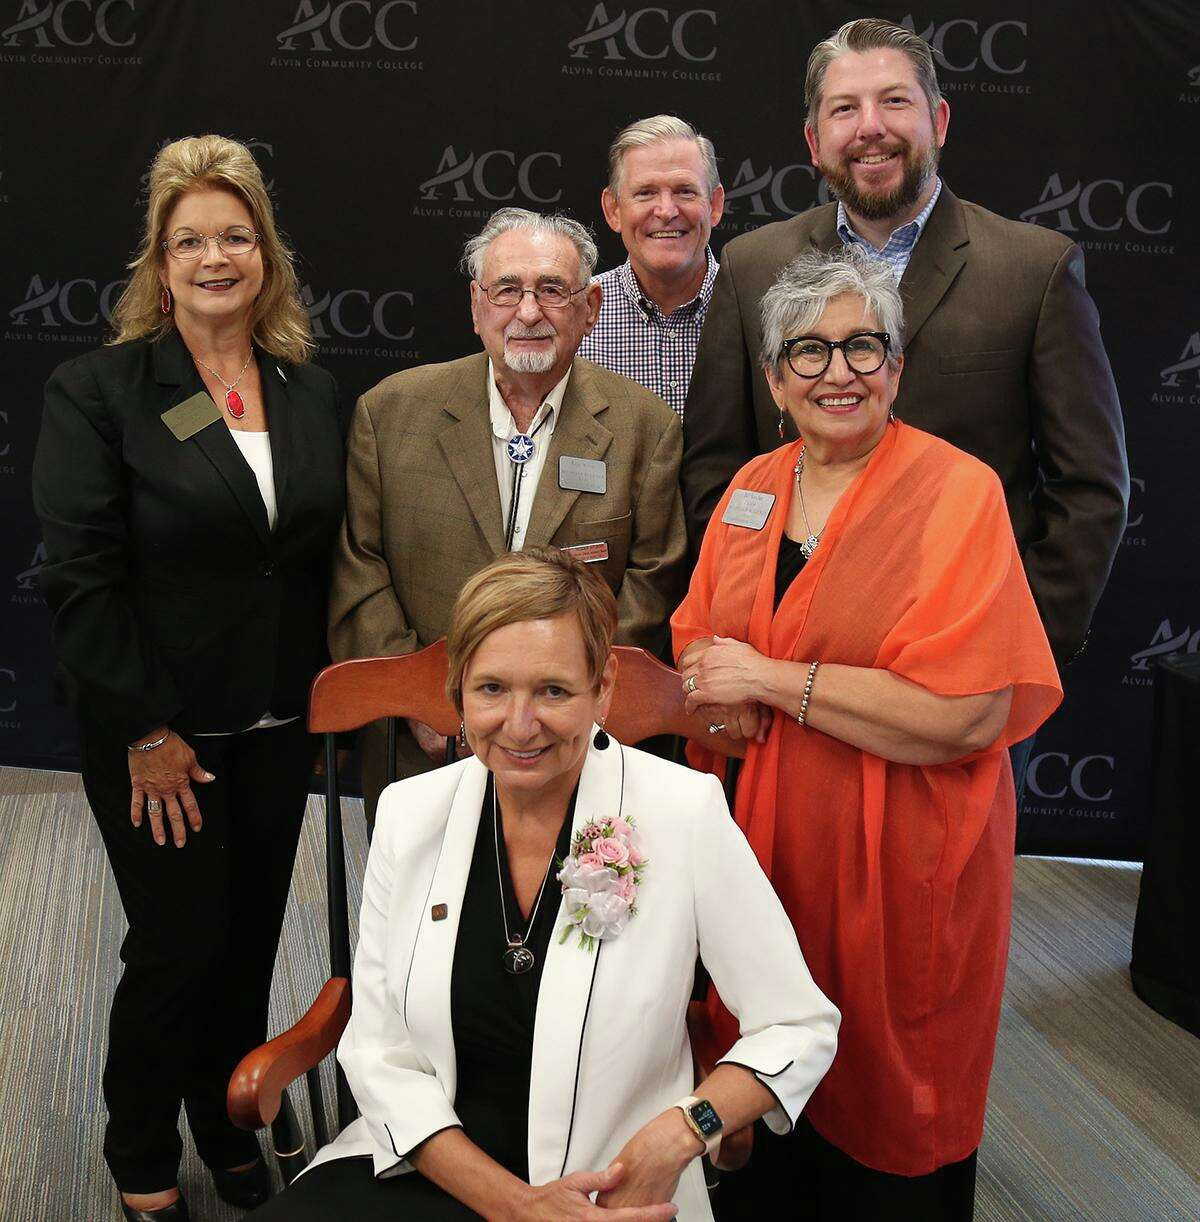 Alvin Community College regents honor retiring President Emeritus Christal M. Albrecht, seated, during a June 24 reception. Behind her are board vice chair Jody Droege, left, regents Roger Stuksa, Jim Crumm and Jake Starkey and board chair 'Bel Sanchez.